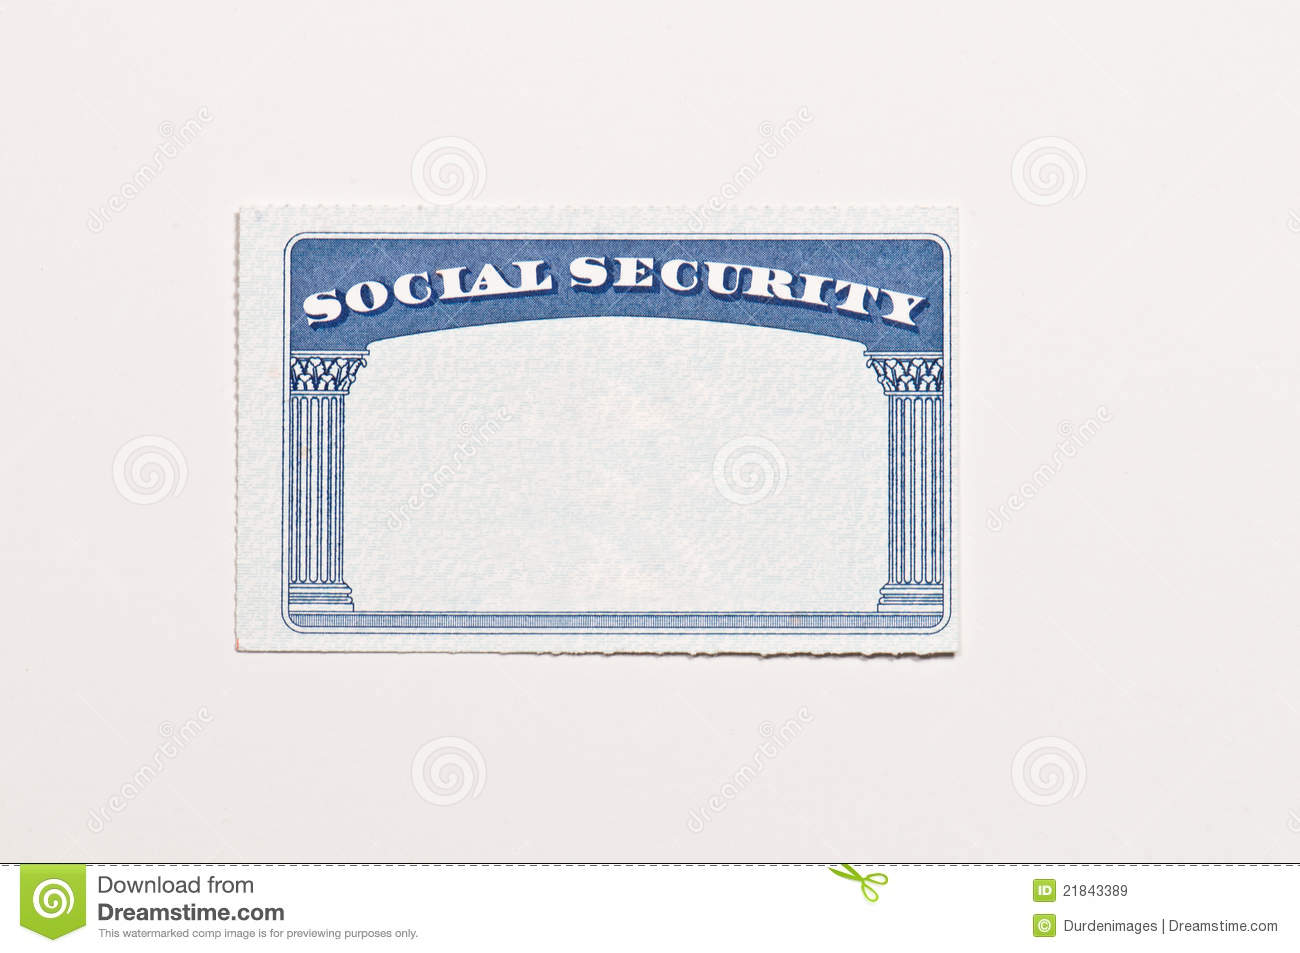 - 21843389 Card Image Security Social Of Stock Blank Image Document